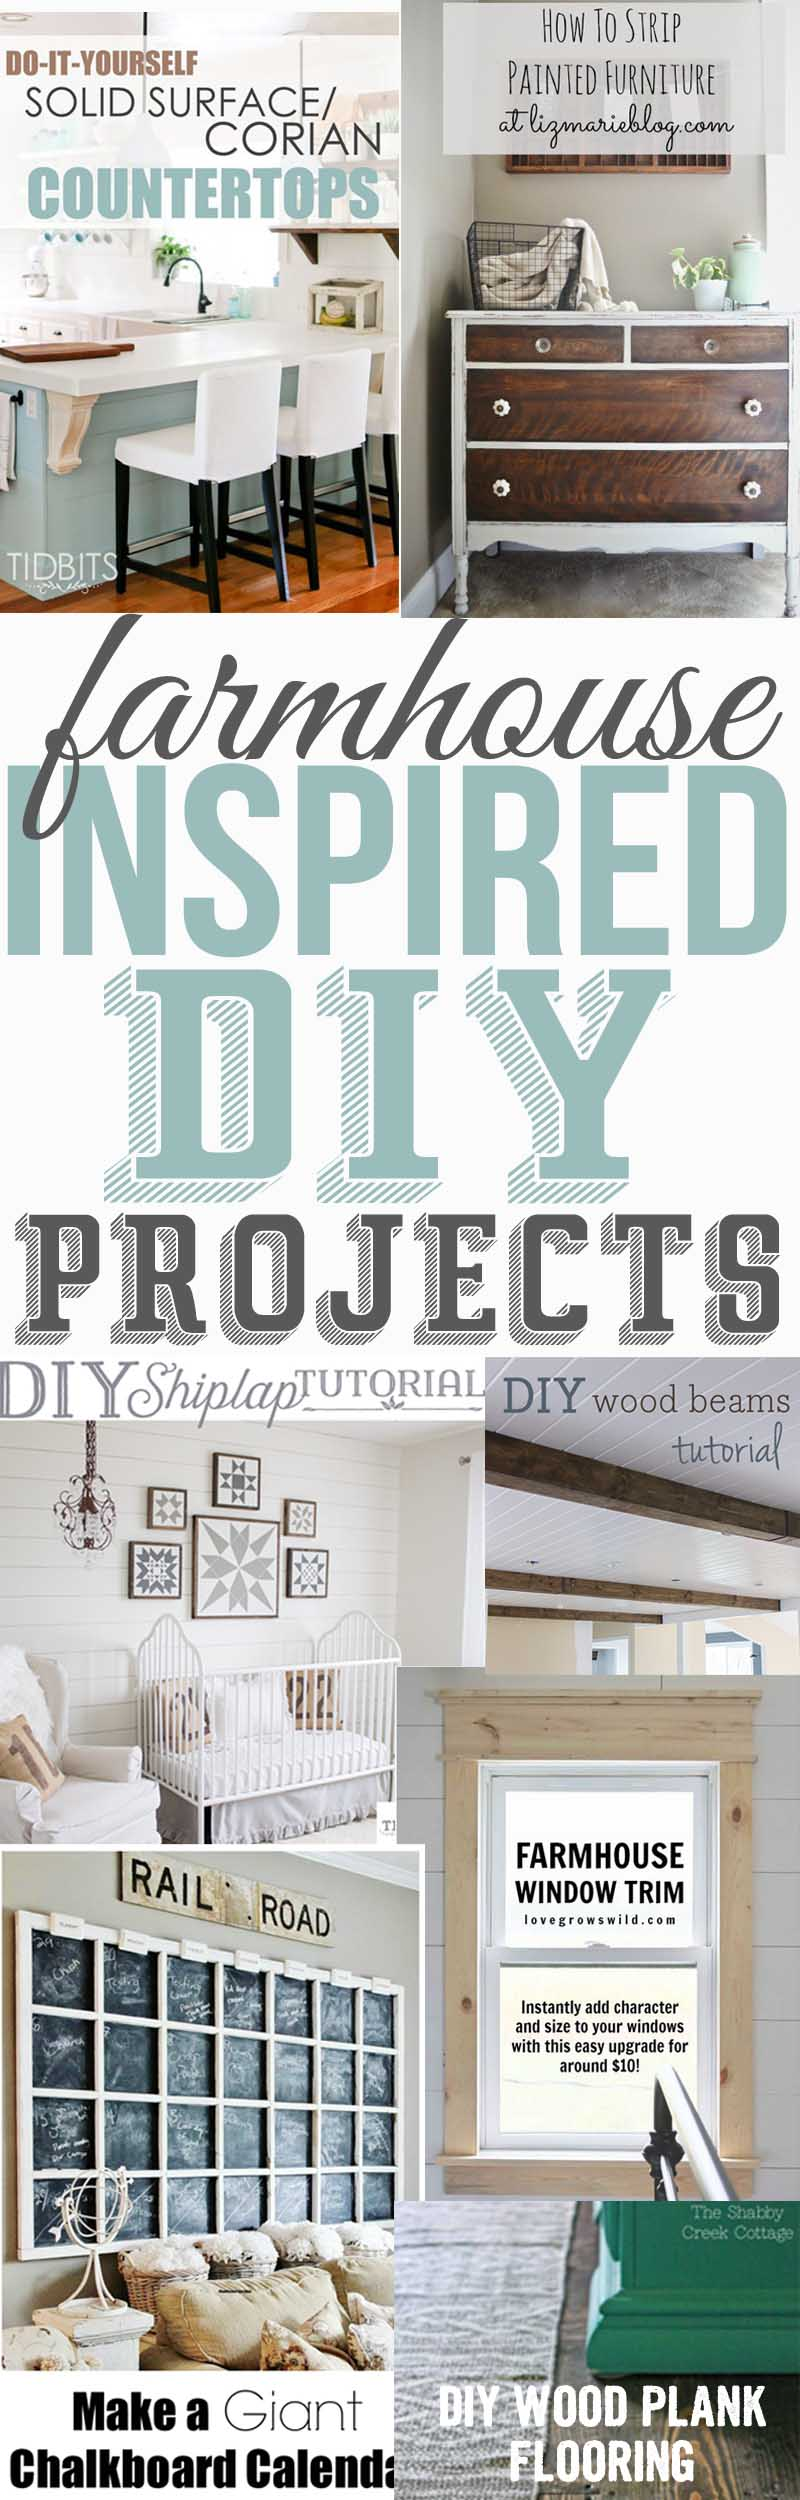 Diy farmhouse inspired projects the mountain view cottage favorite must have tools for diy solutioingenieria Gallery